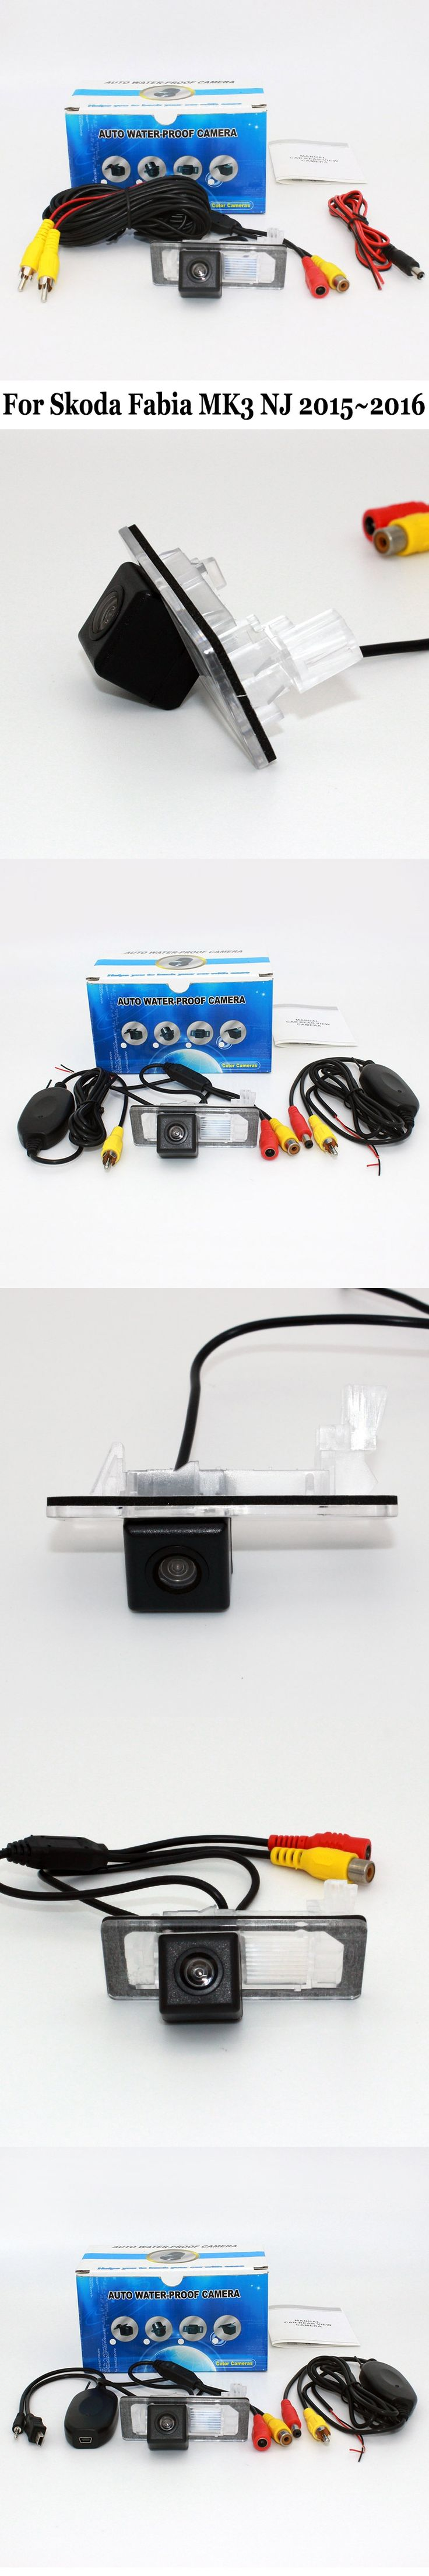 Backup Cameras For Skoda Fabia MK3 NJ 2015~2016 / RCA Wire Or Wireless / HD Wide Lens Angle / CCD Night Vision Rear View Camera